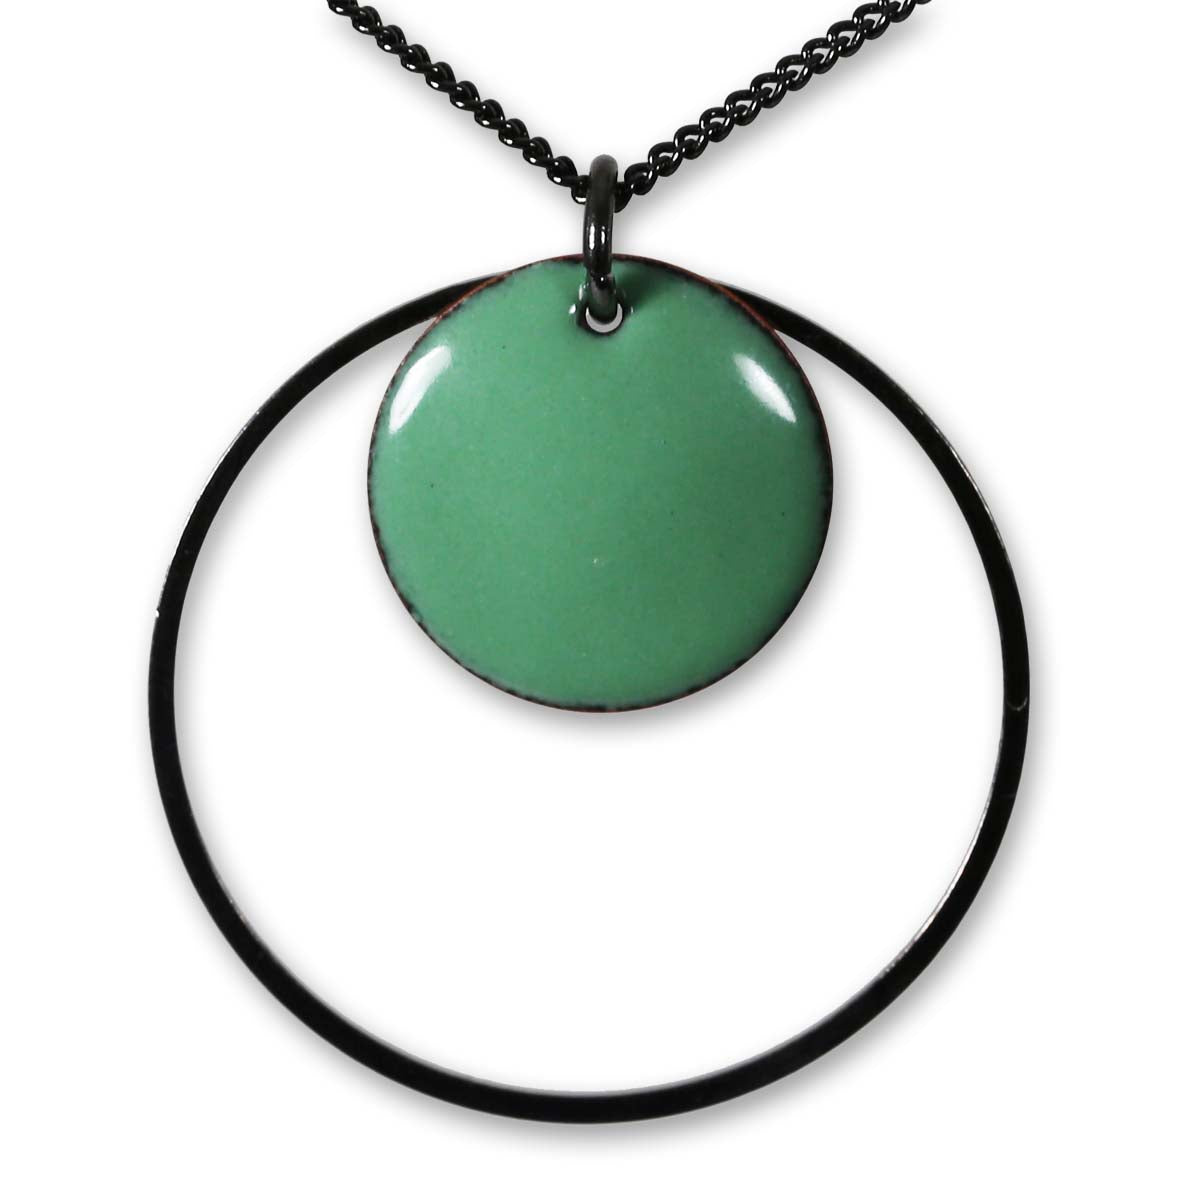 Michele Dodge:(S) Encircled Pendant - Green